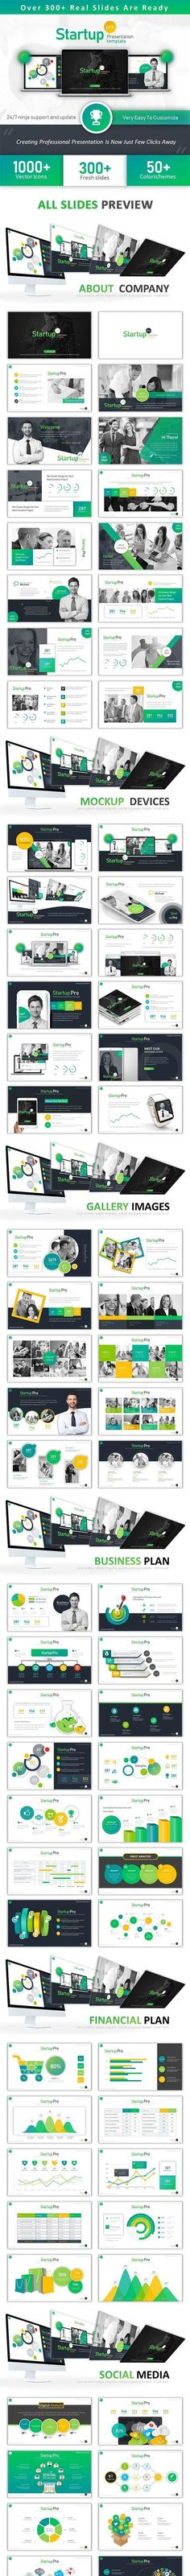 Start Up Business Powerpoint for $12 #powerpoint #design #ppt #template #graphic #PPTTemplates #GraphicDesign #DesignResources #presentations #BusinessPowerPointTemplate #business #GraphicResources #designs #presentation #collections #PowerPointTemplates #Envato #PresentationTemplates #sets #DesignSets Business Powerpoint Templates, Keynote Template, Powerpoint Design, Presentation Design, Presentation Templates, Keynote Presentation, Graphic Design, Design Ppt, Keynote Design